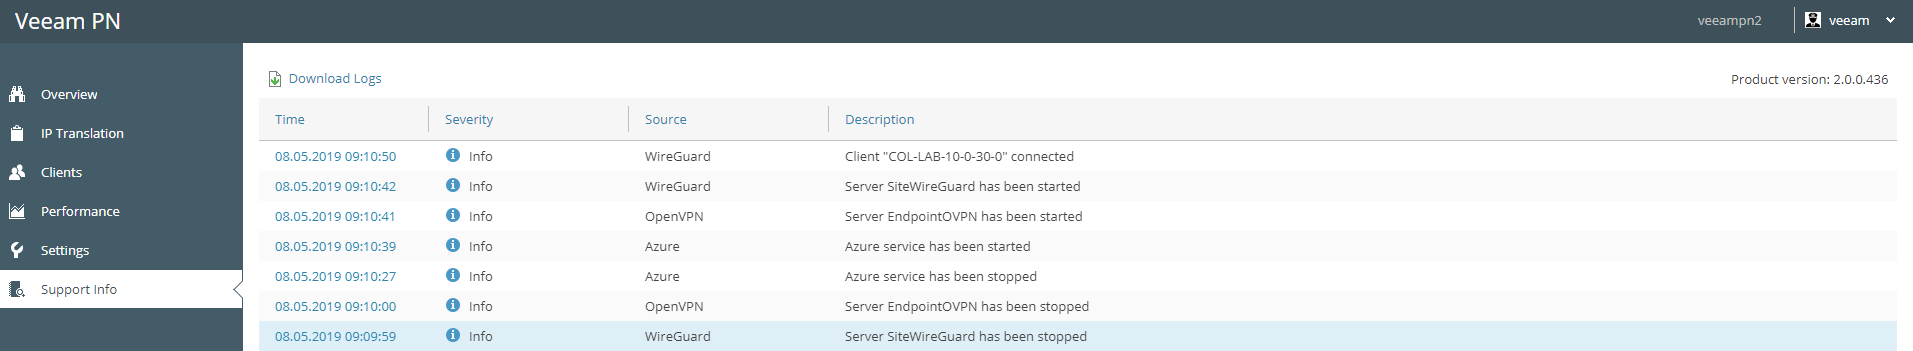 WireGuard Featured in Veeam Powered Network v2